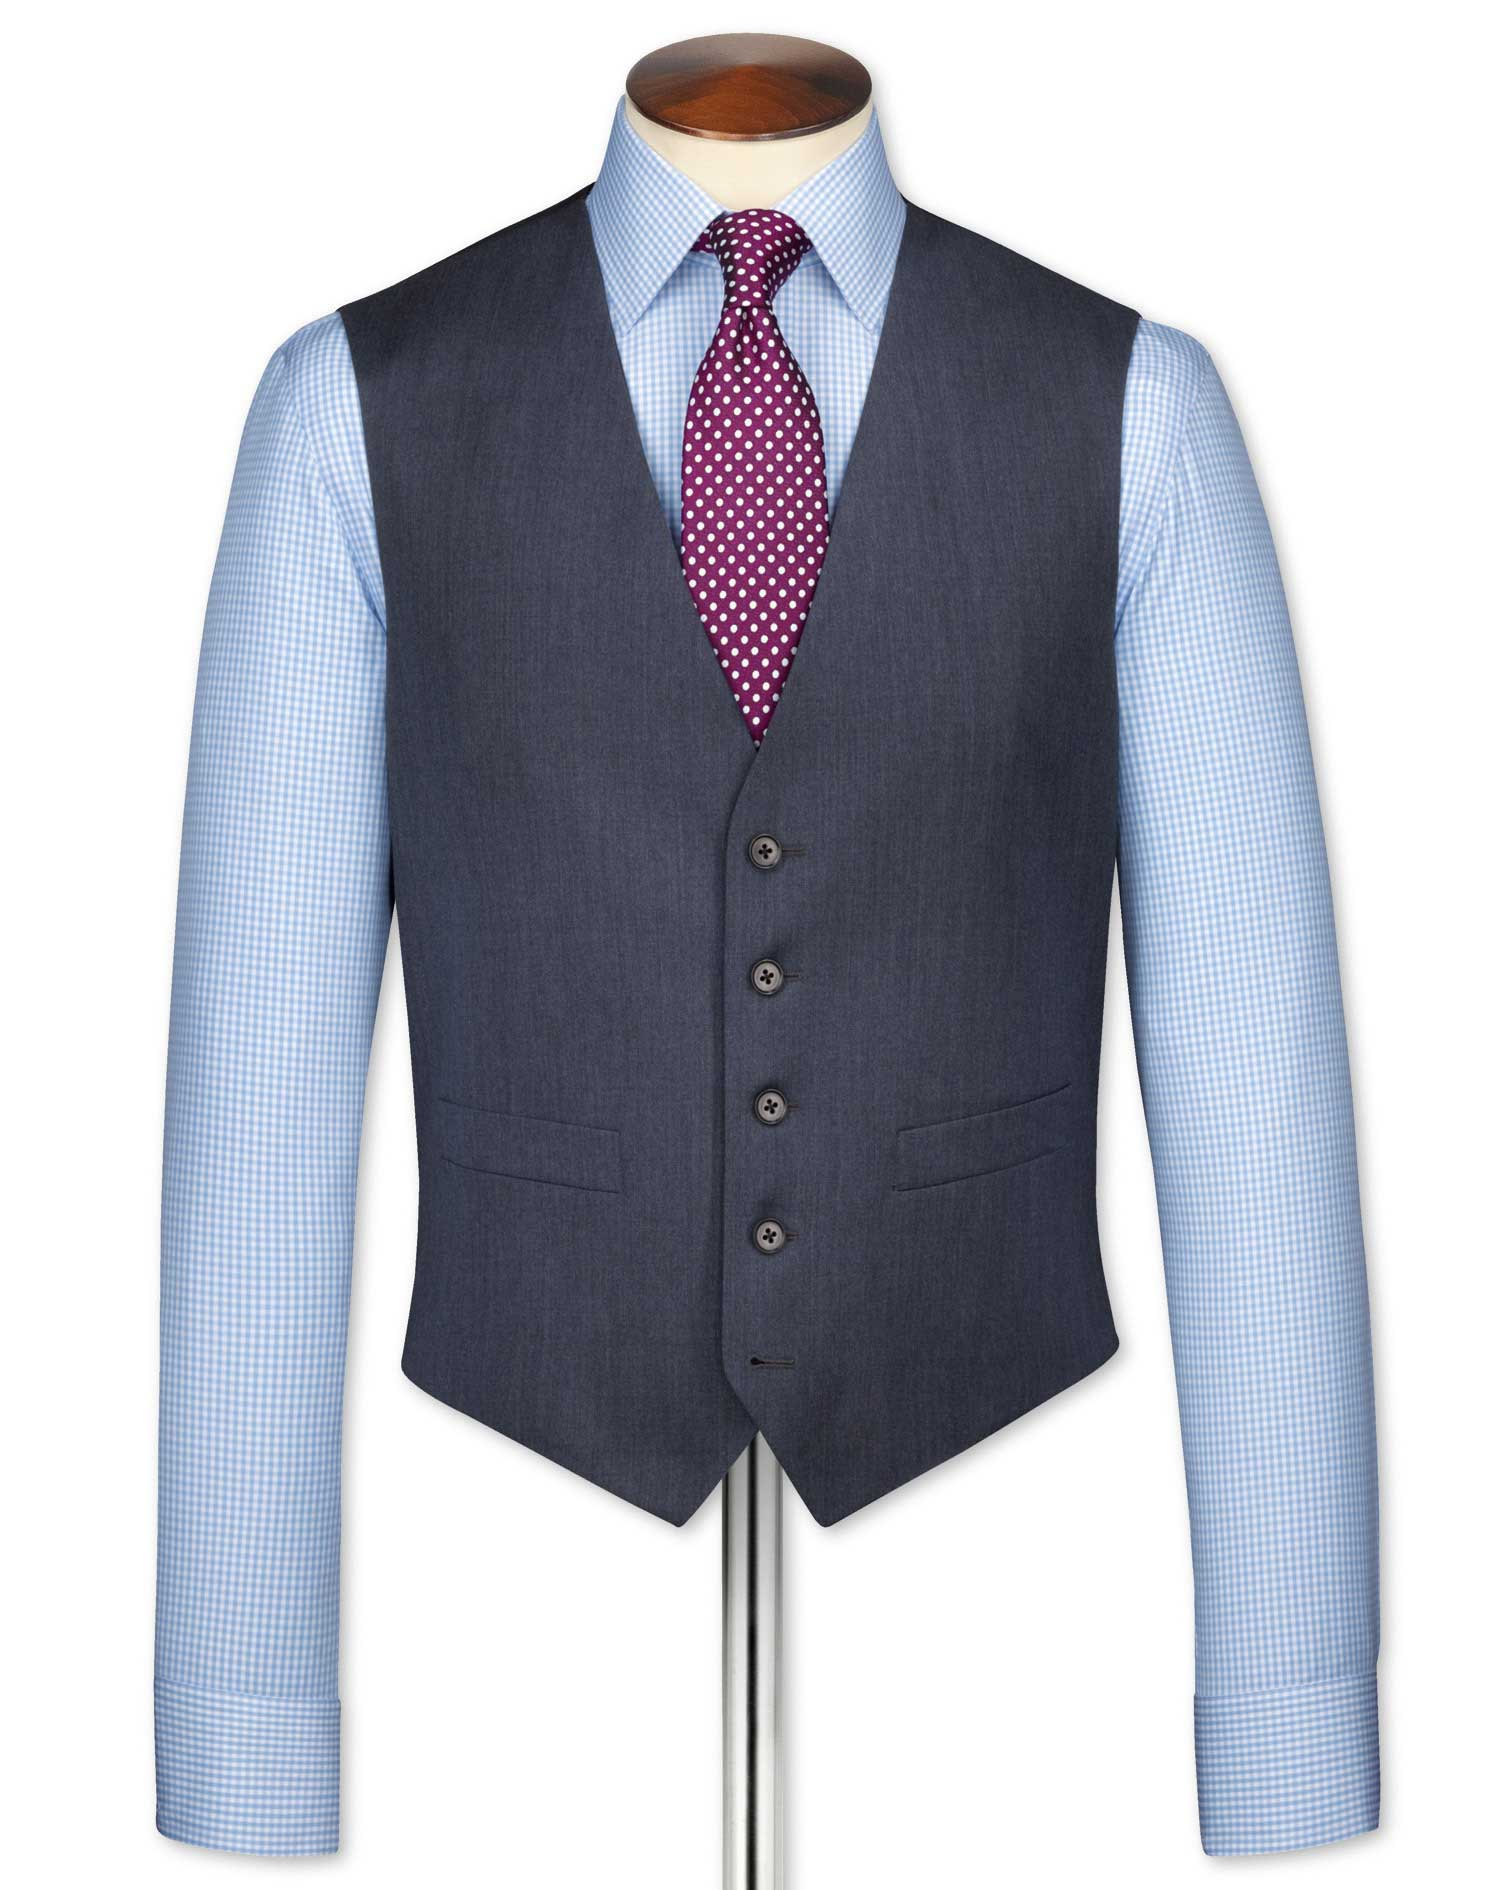 Airforce Blue Twill Business Suit Wool Waistcoat Size w40 by Charles Tyrwhitt